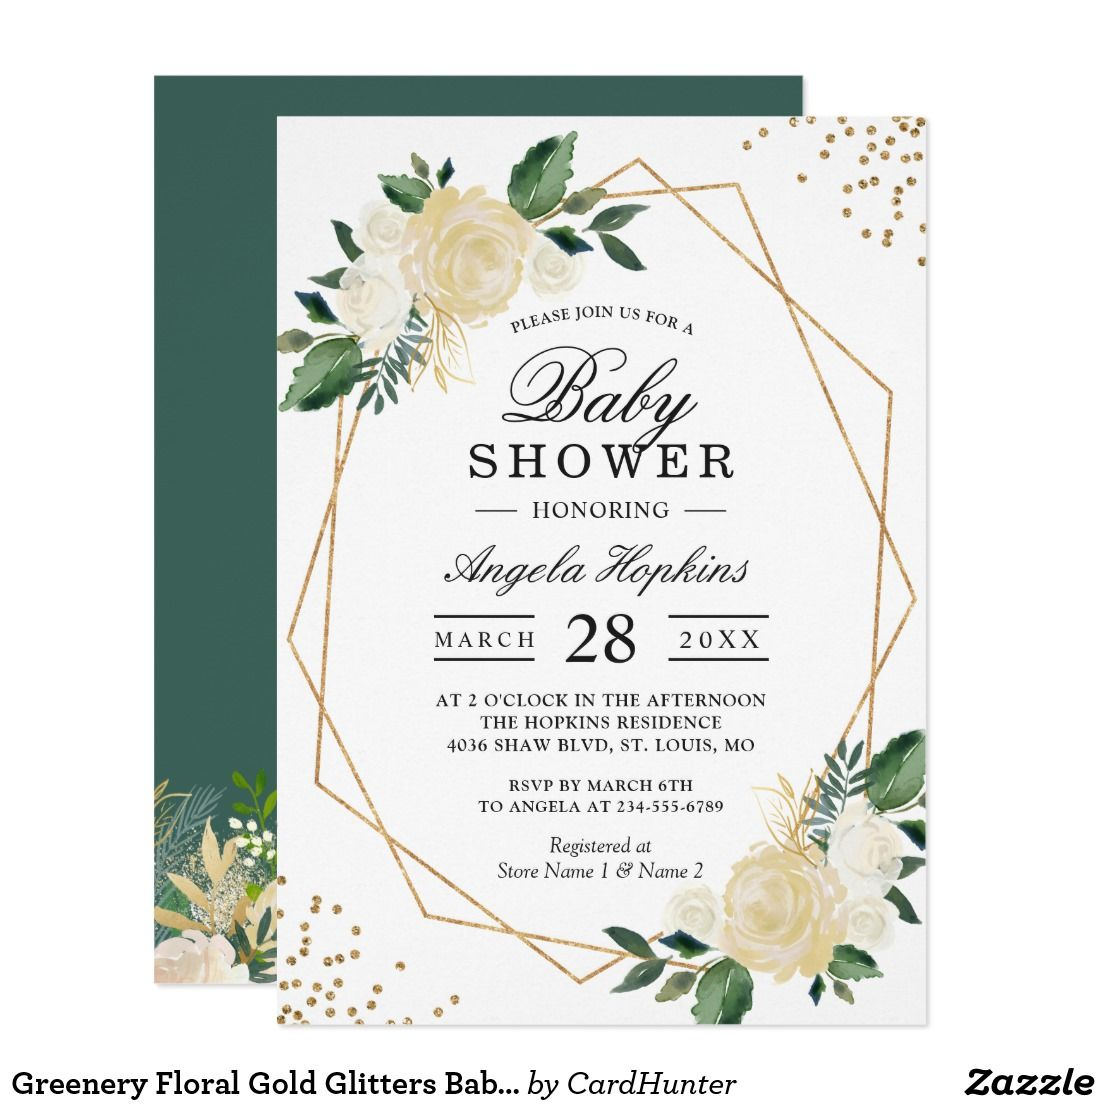 Greenery Floral Gold Glitters Baby Shower Brunch Card Gold Glitters ...